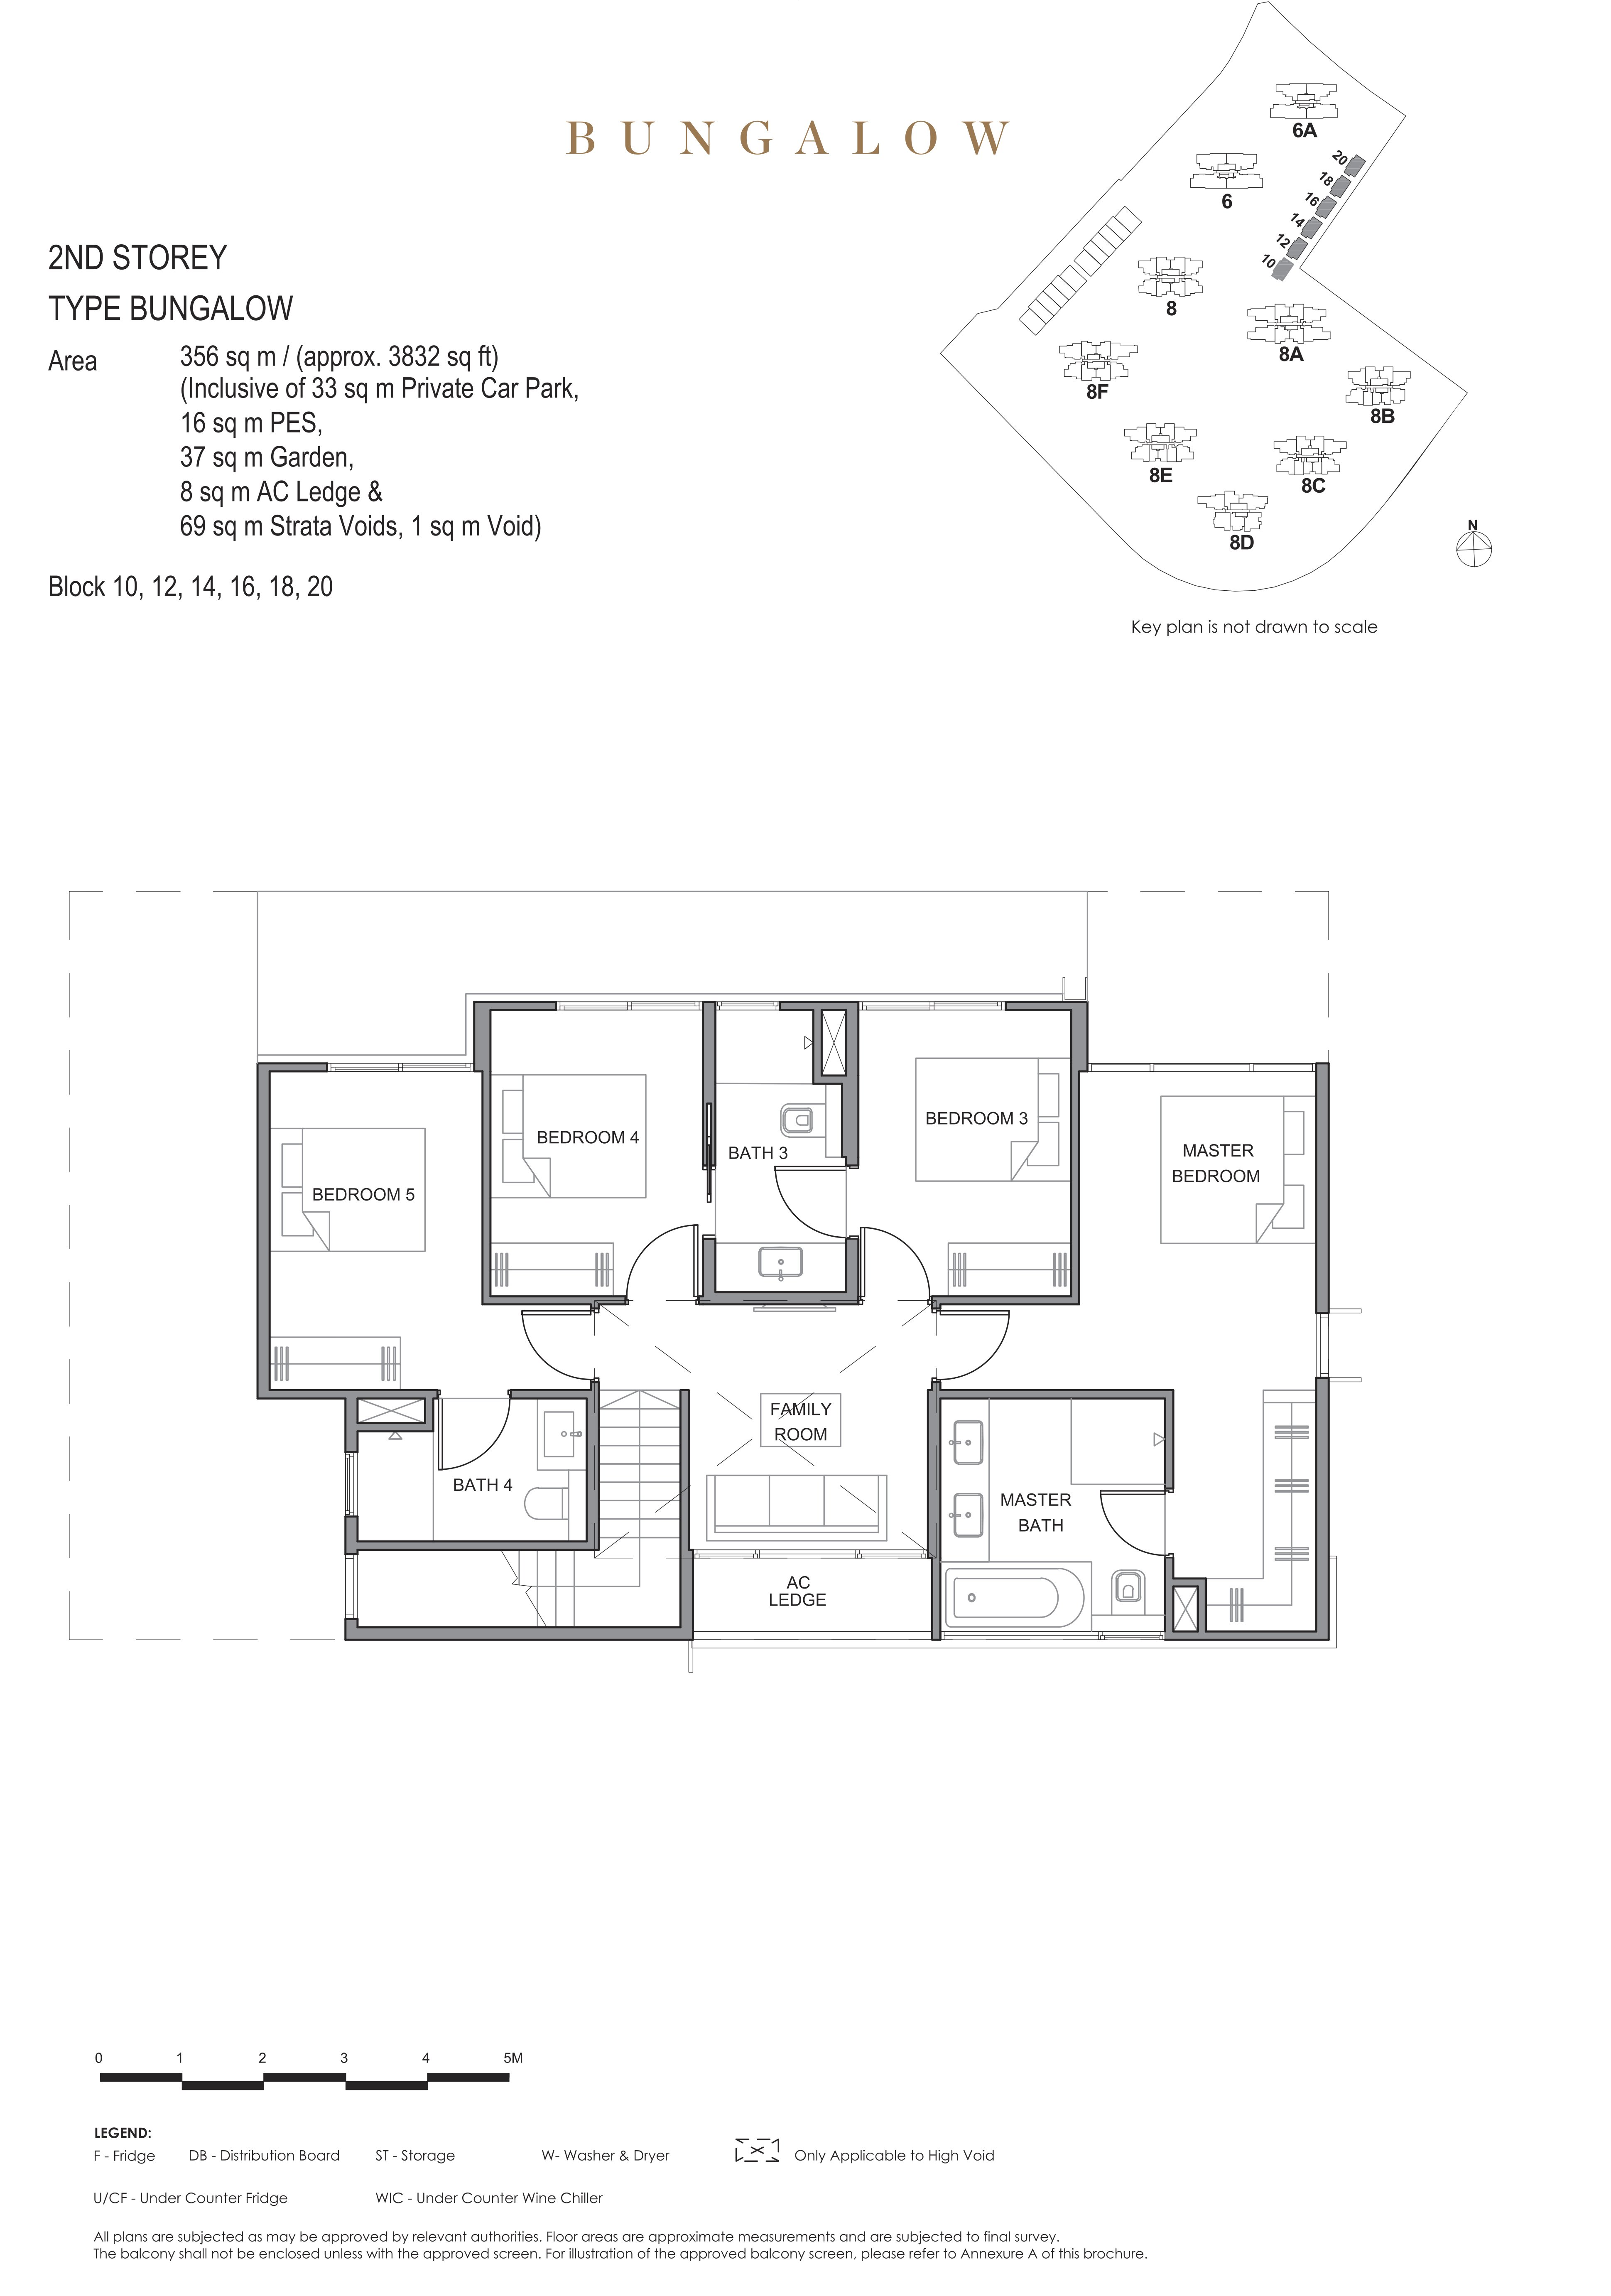 Parc Clematis 锦泰门第 masterpiece bungalow 2nd storey